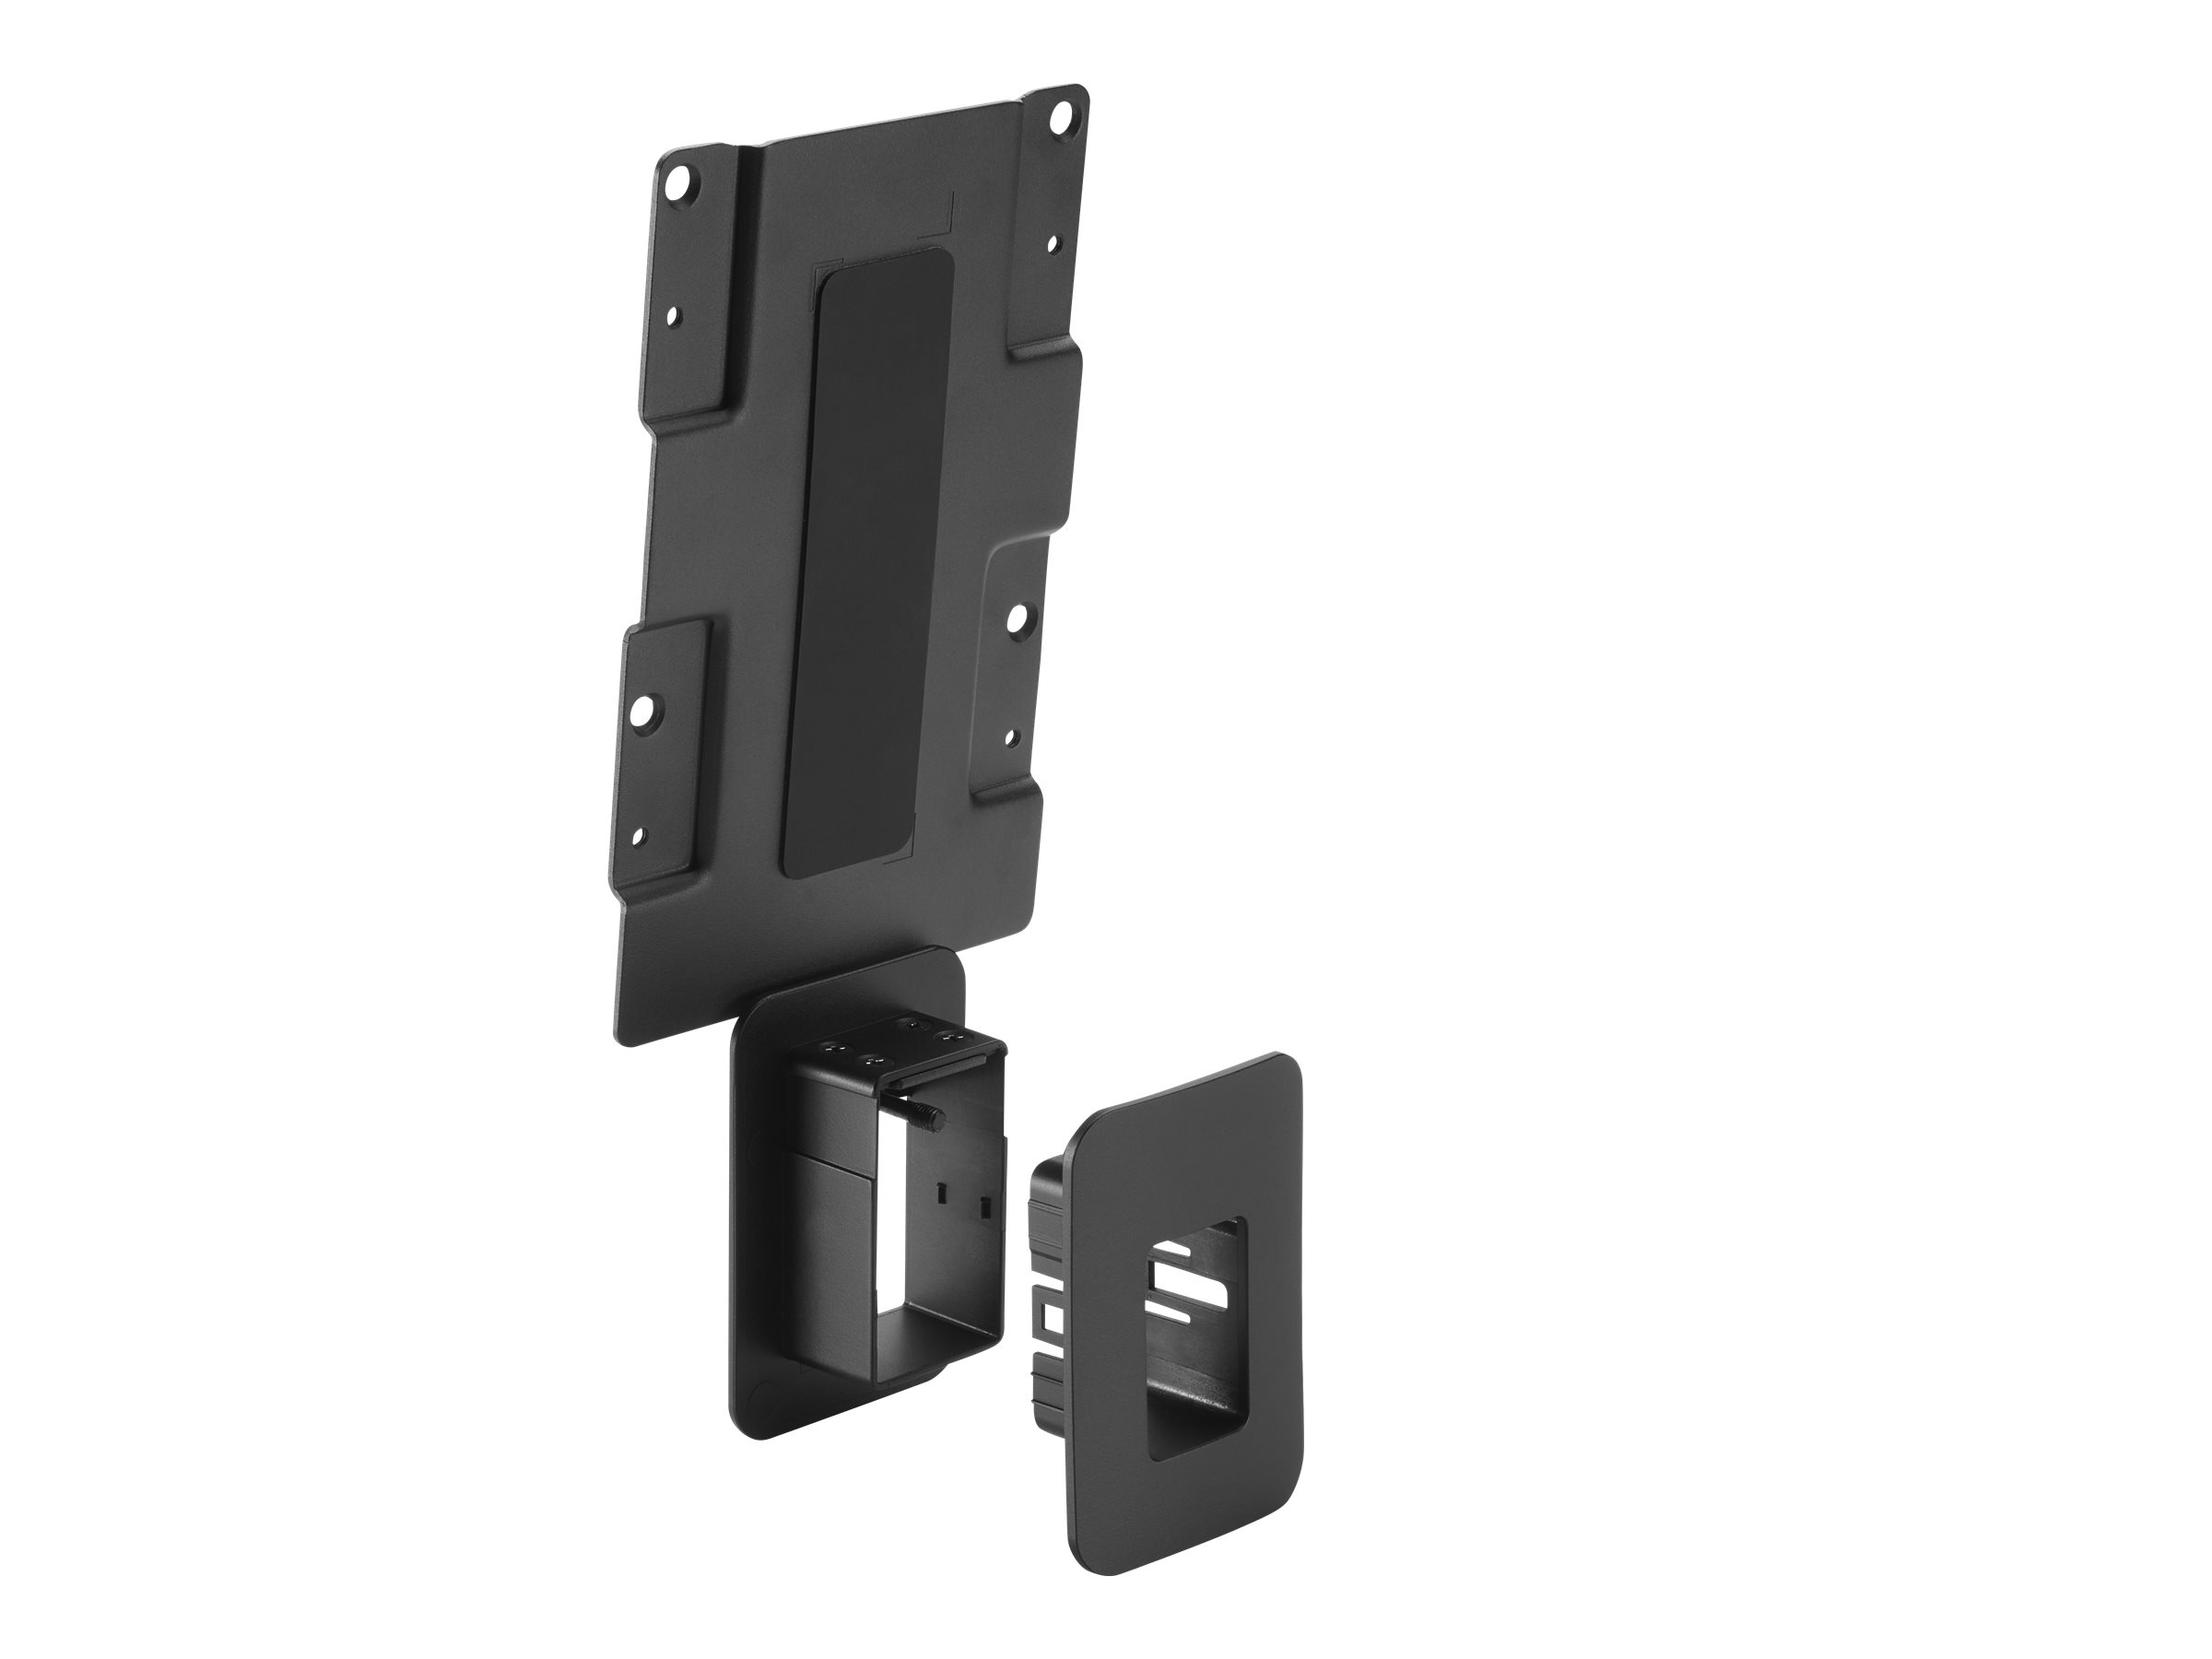 HP desktop to wall/monitor mounting bracket